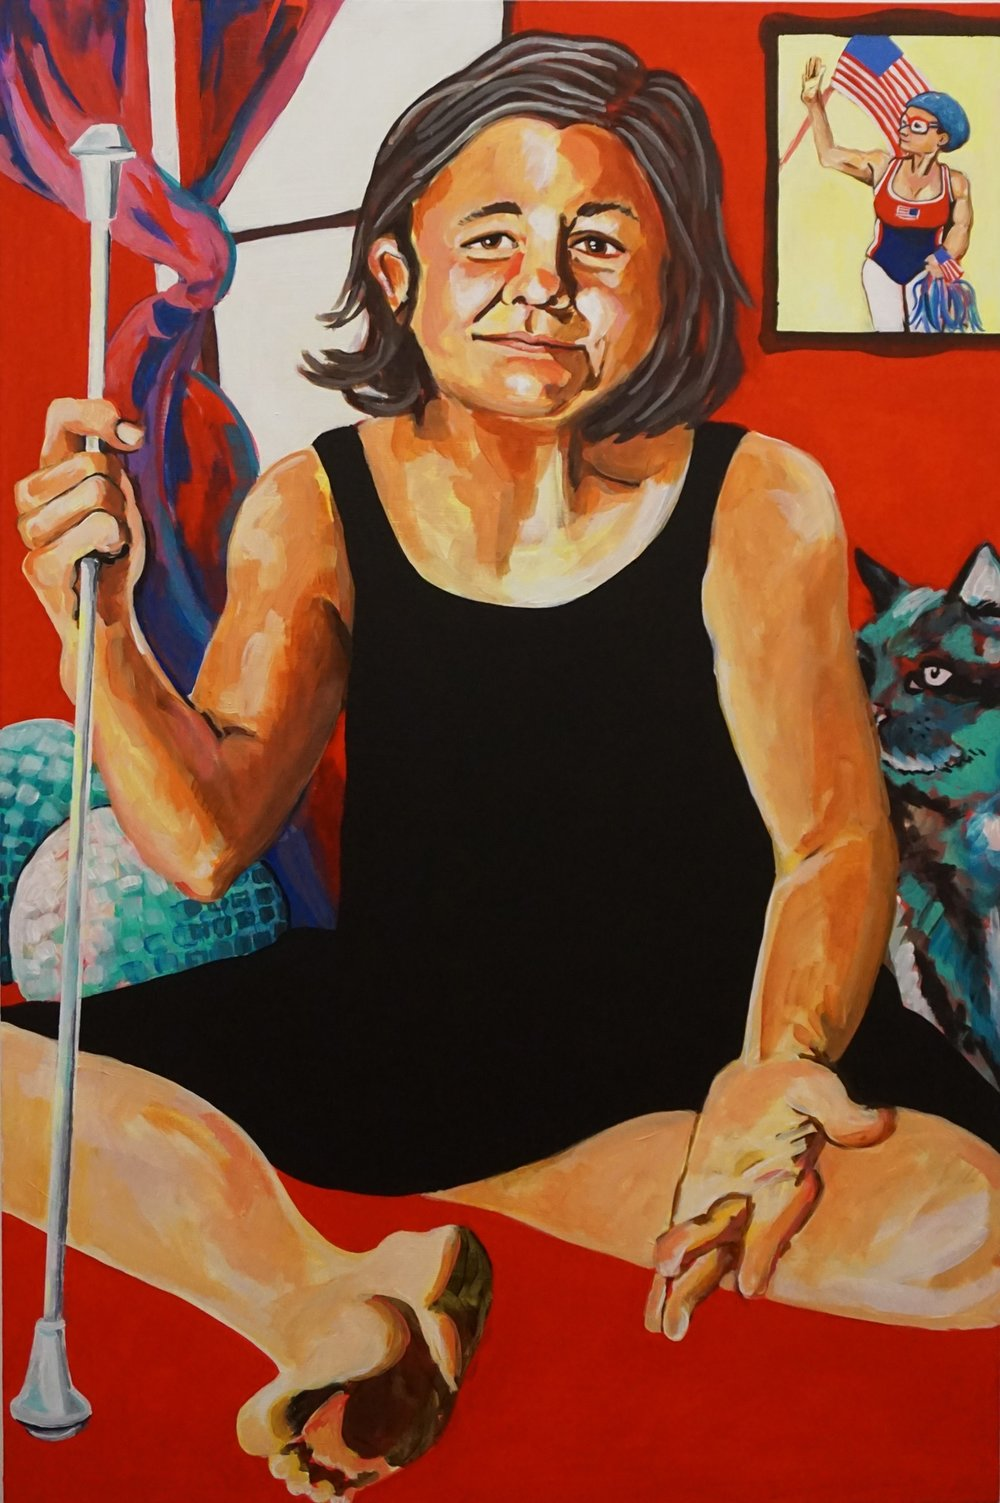 She Performs an Unbelievable Feat (portrait of Diane Dwyer).